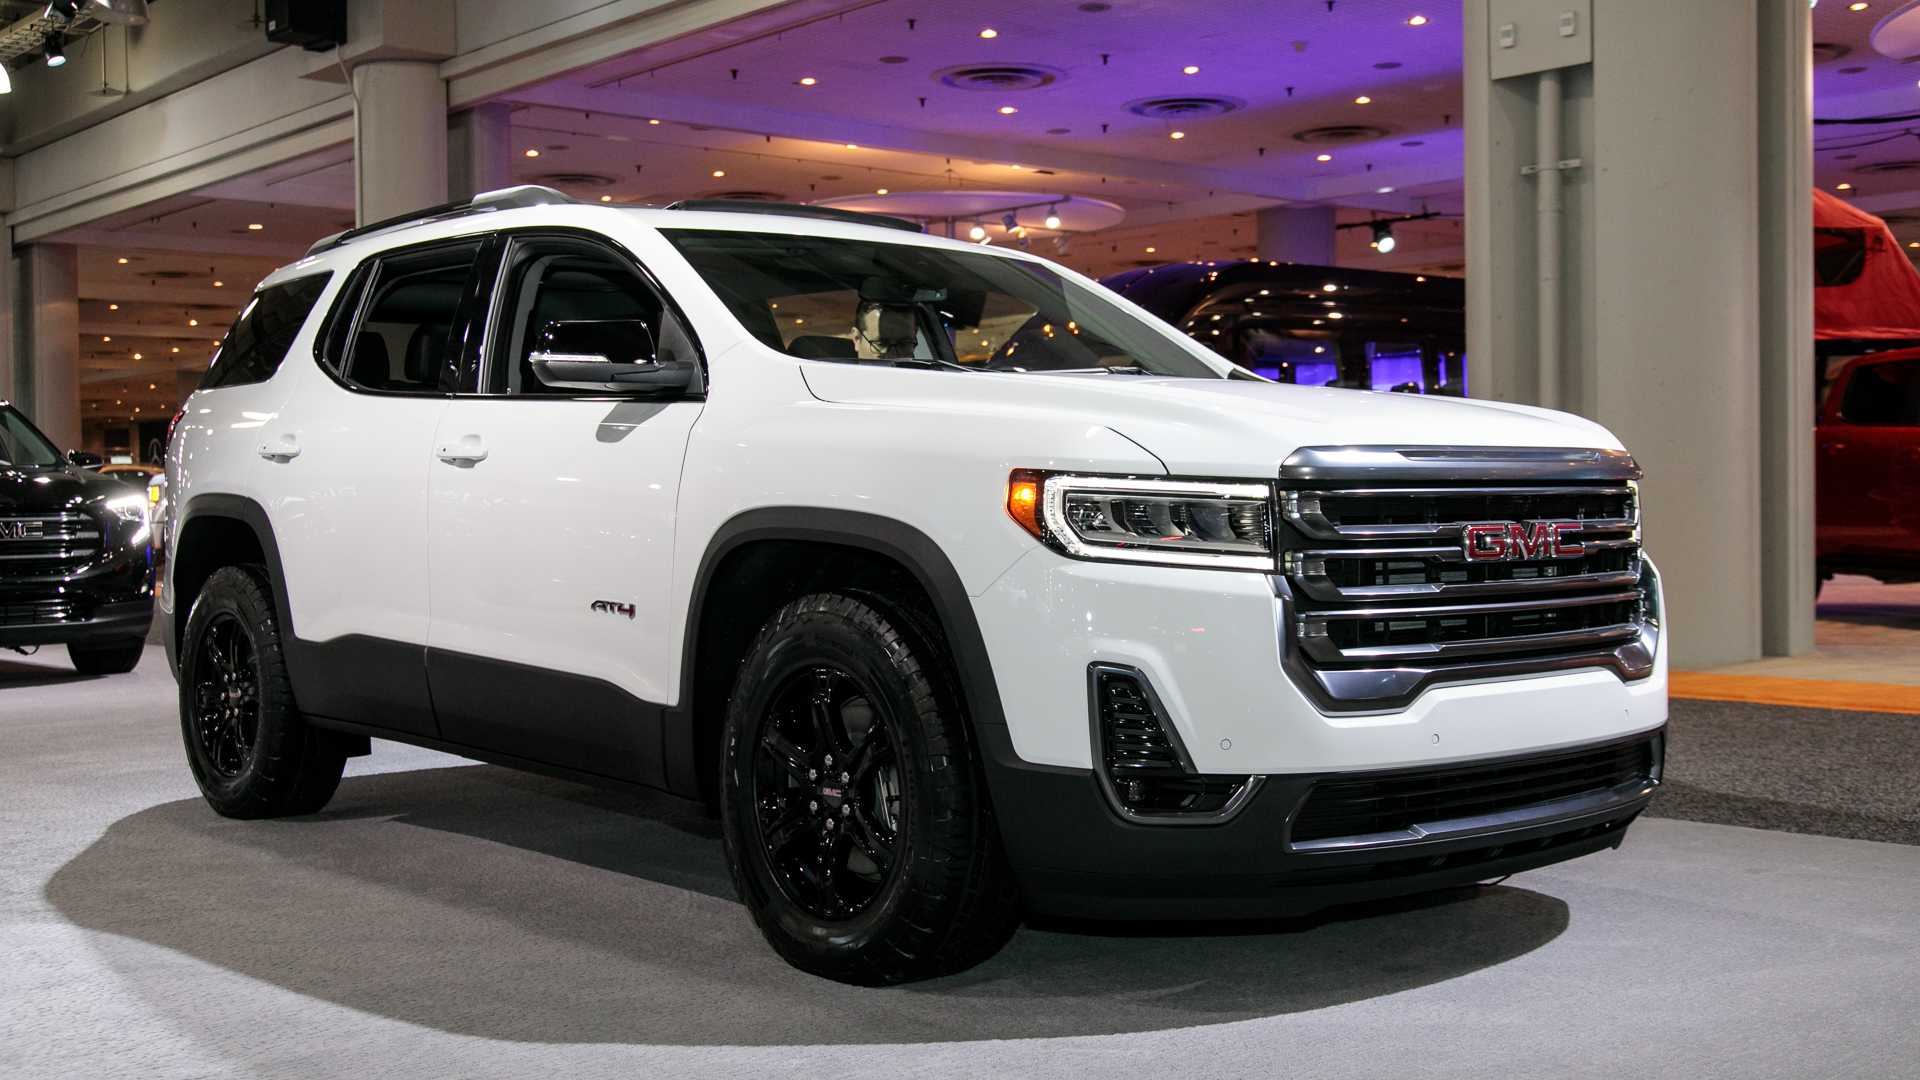 91 New GMC Acadia 2020 Release Date Price Design And Review